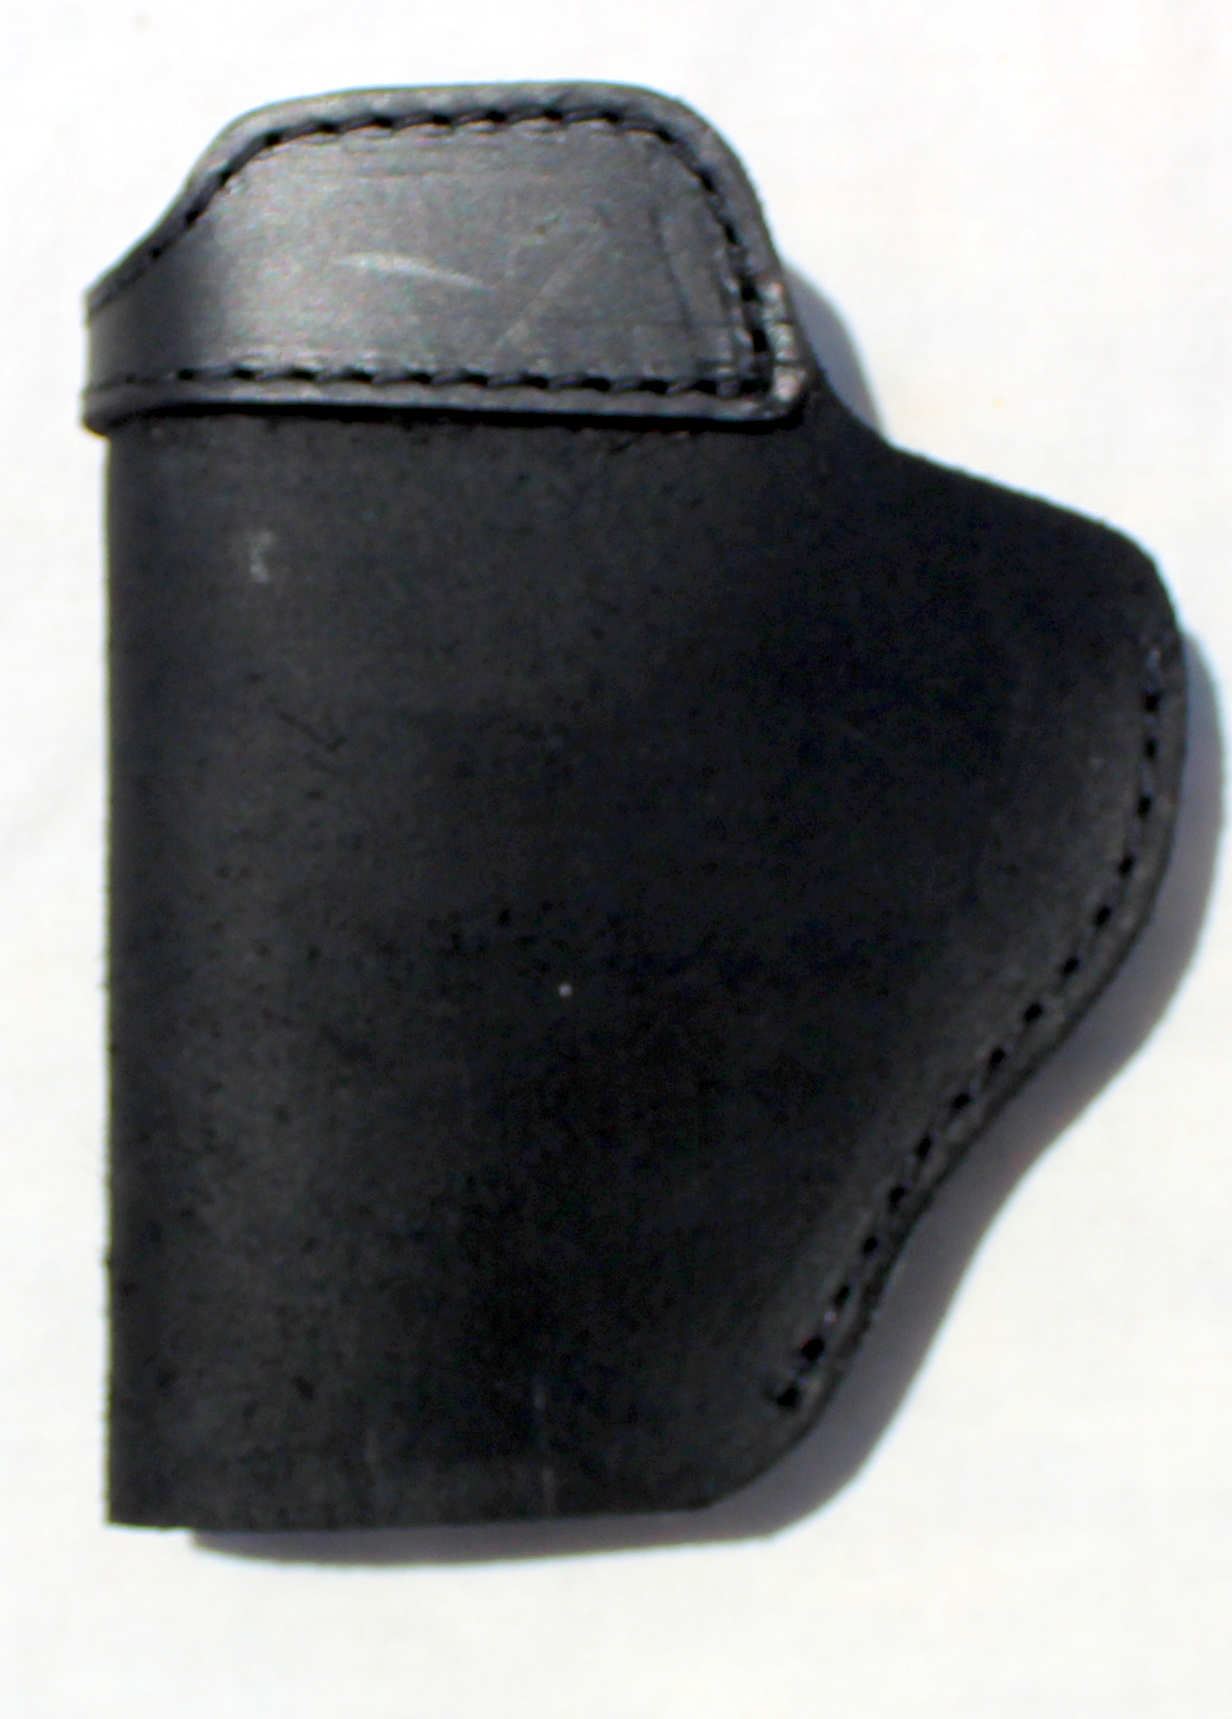 The Ultimate Suede Gun Holster - BLACK Suede Clip Holster Fits Glock / XD Style Handguns